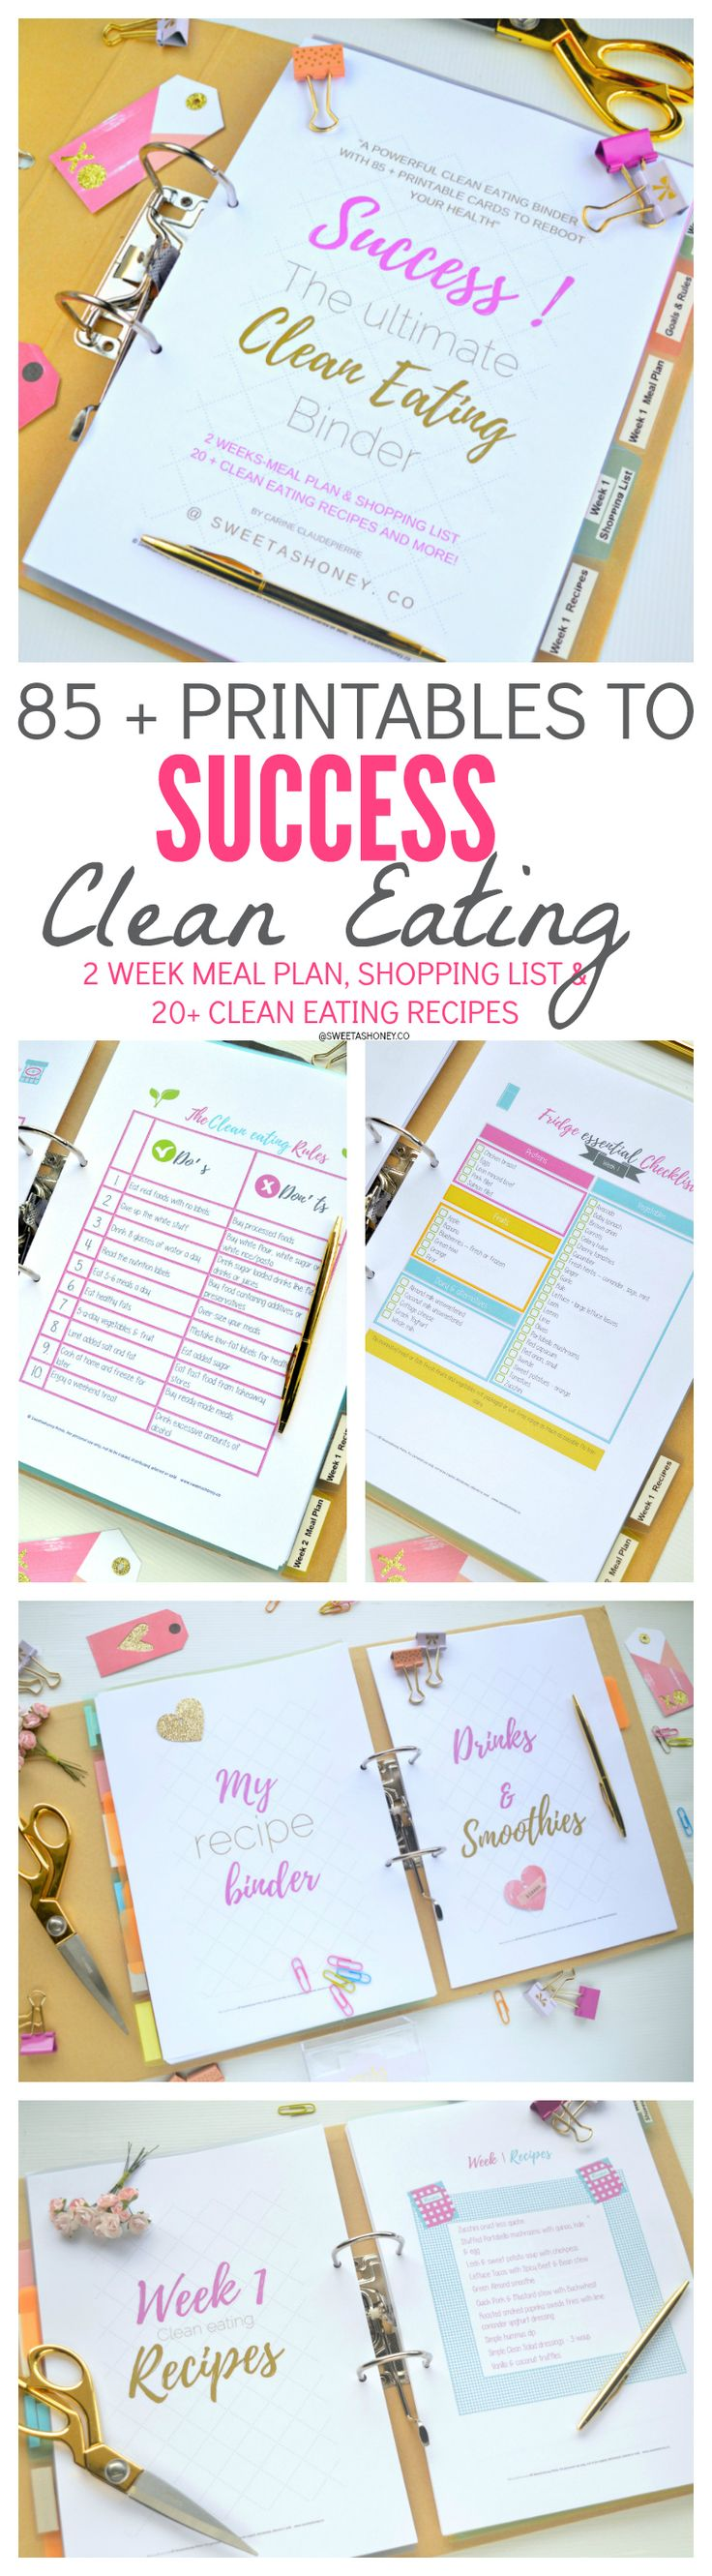 tasty clean eating list recipes on pinterest clean food list